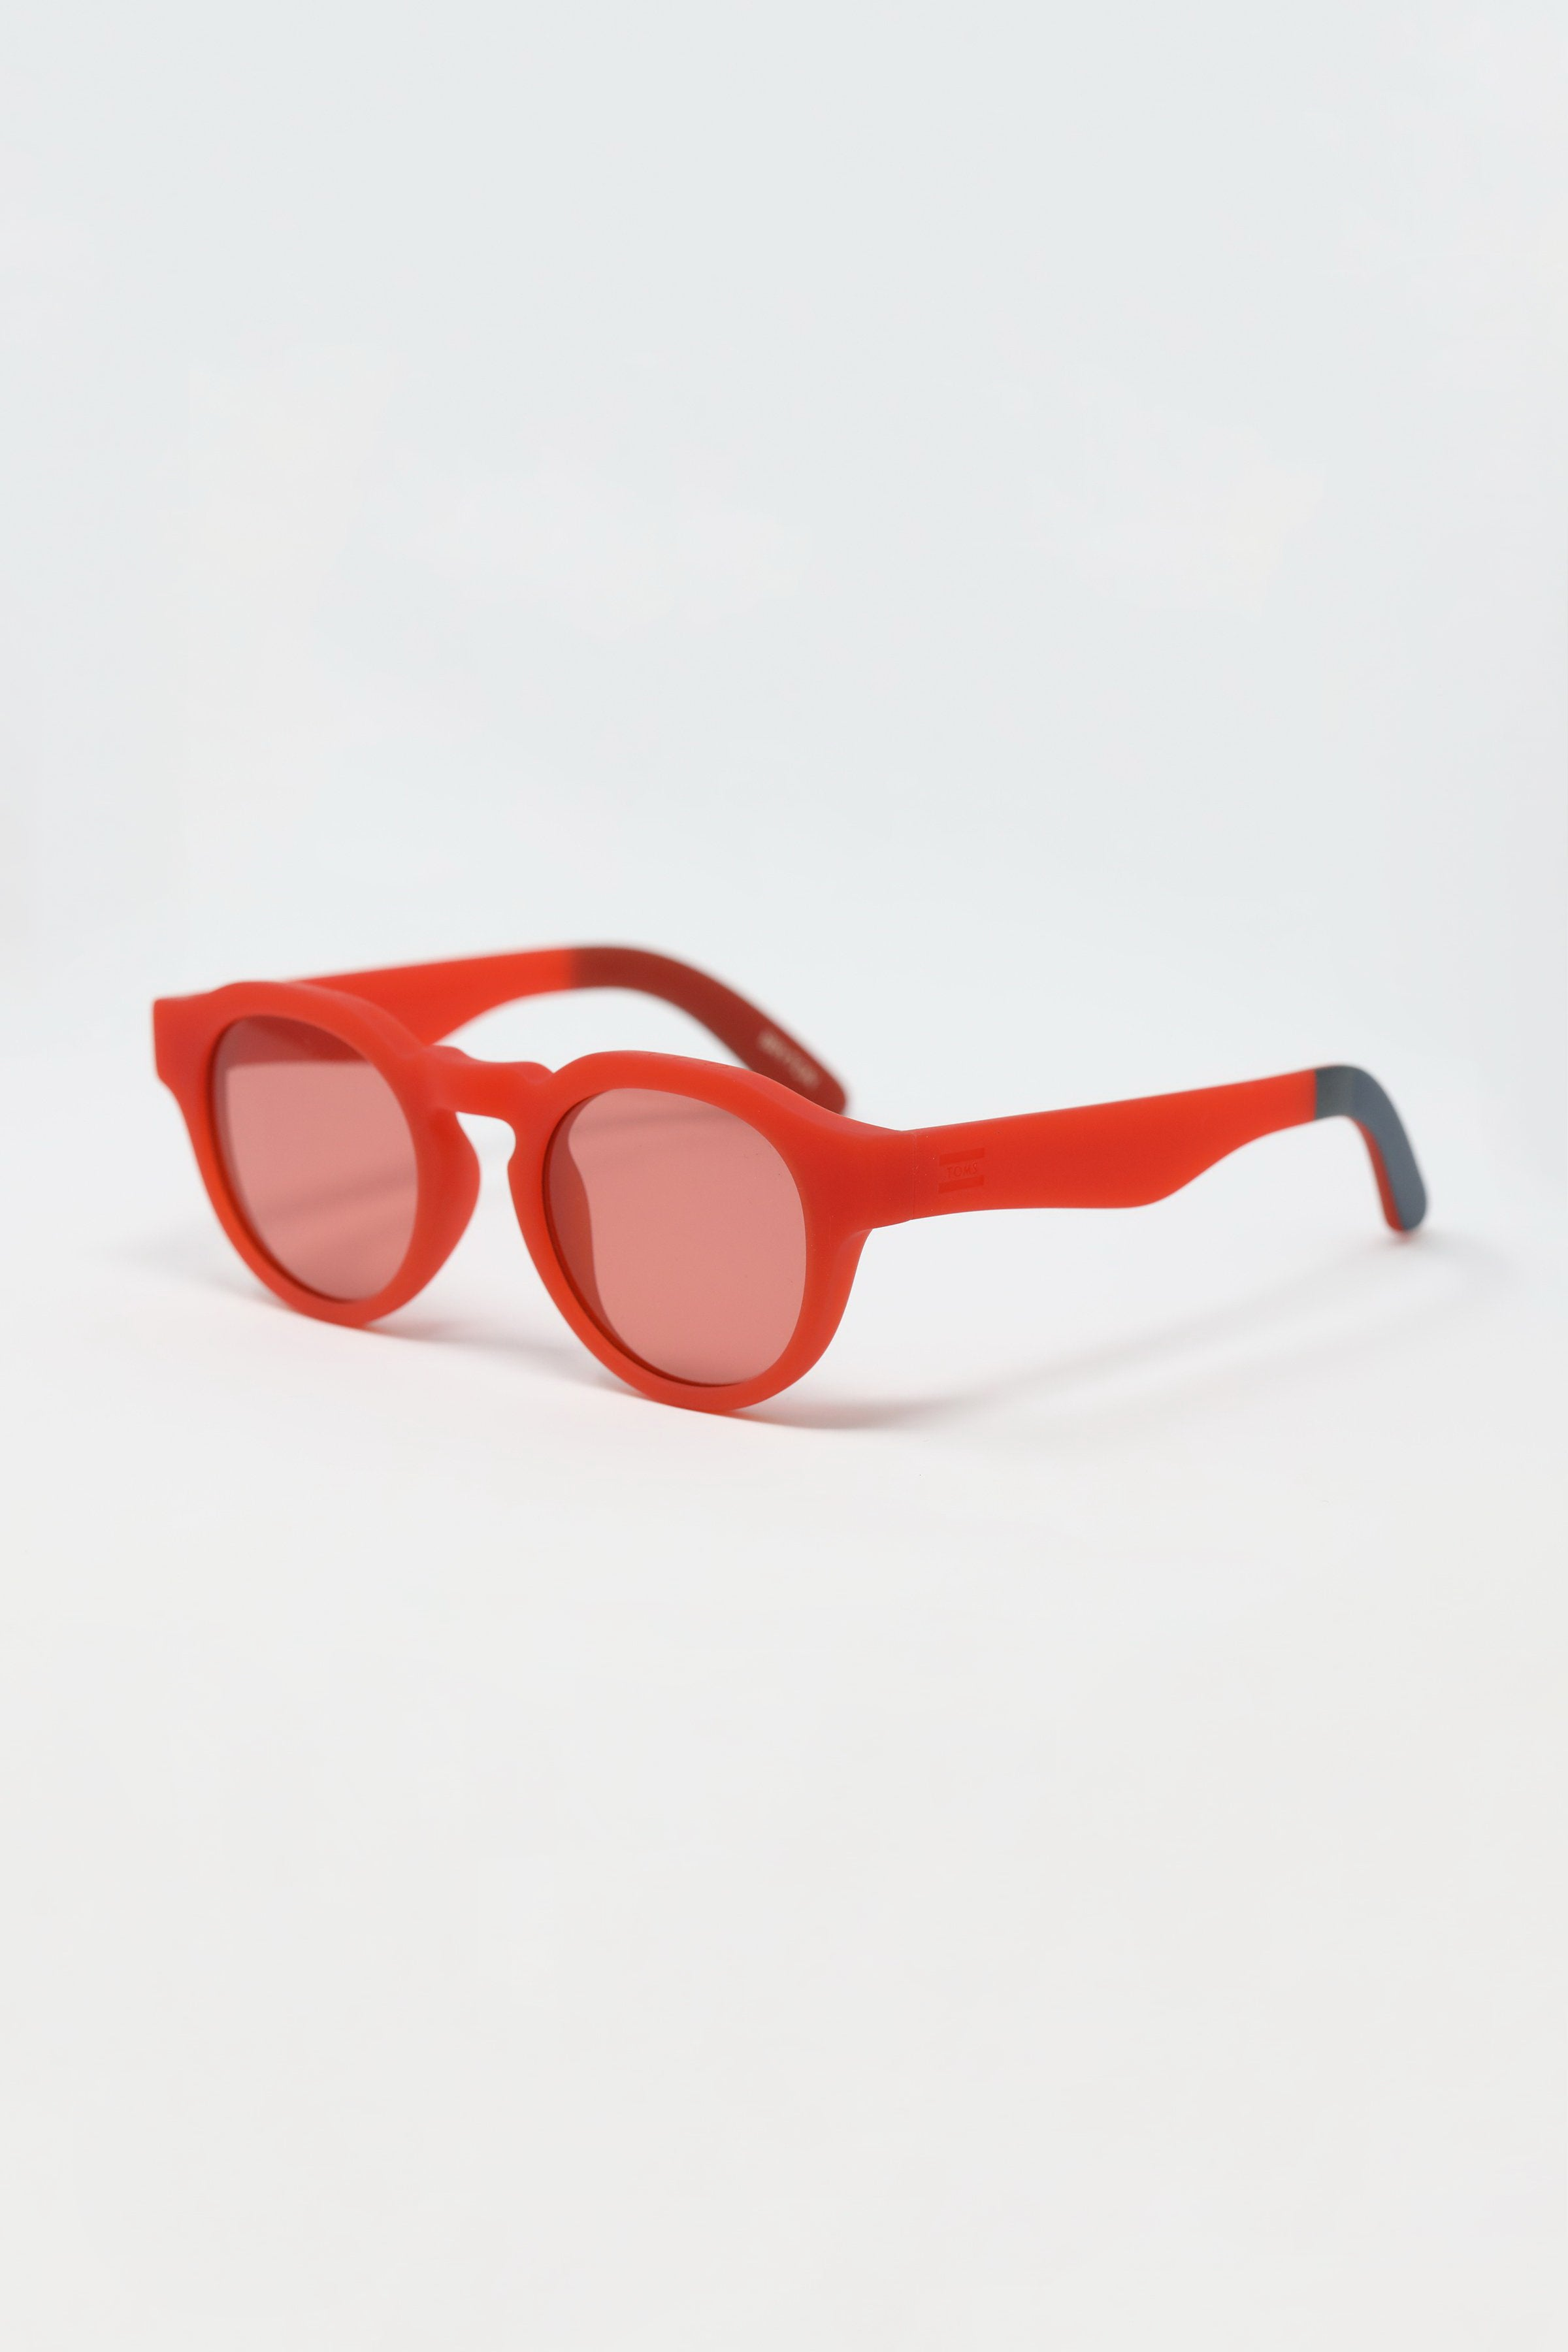 TRAVELERS BY TOMS Bryton Matte Fiesta Red Sunglasses